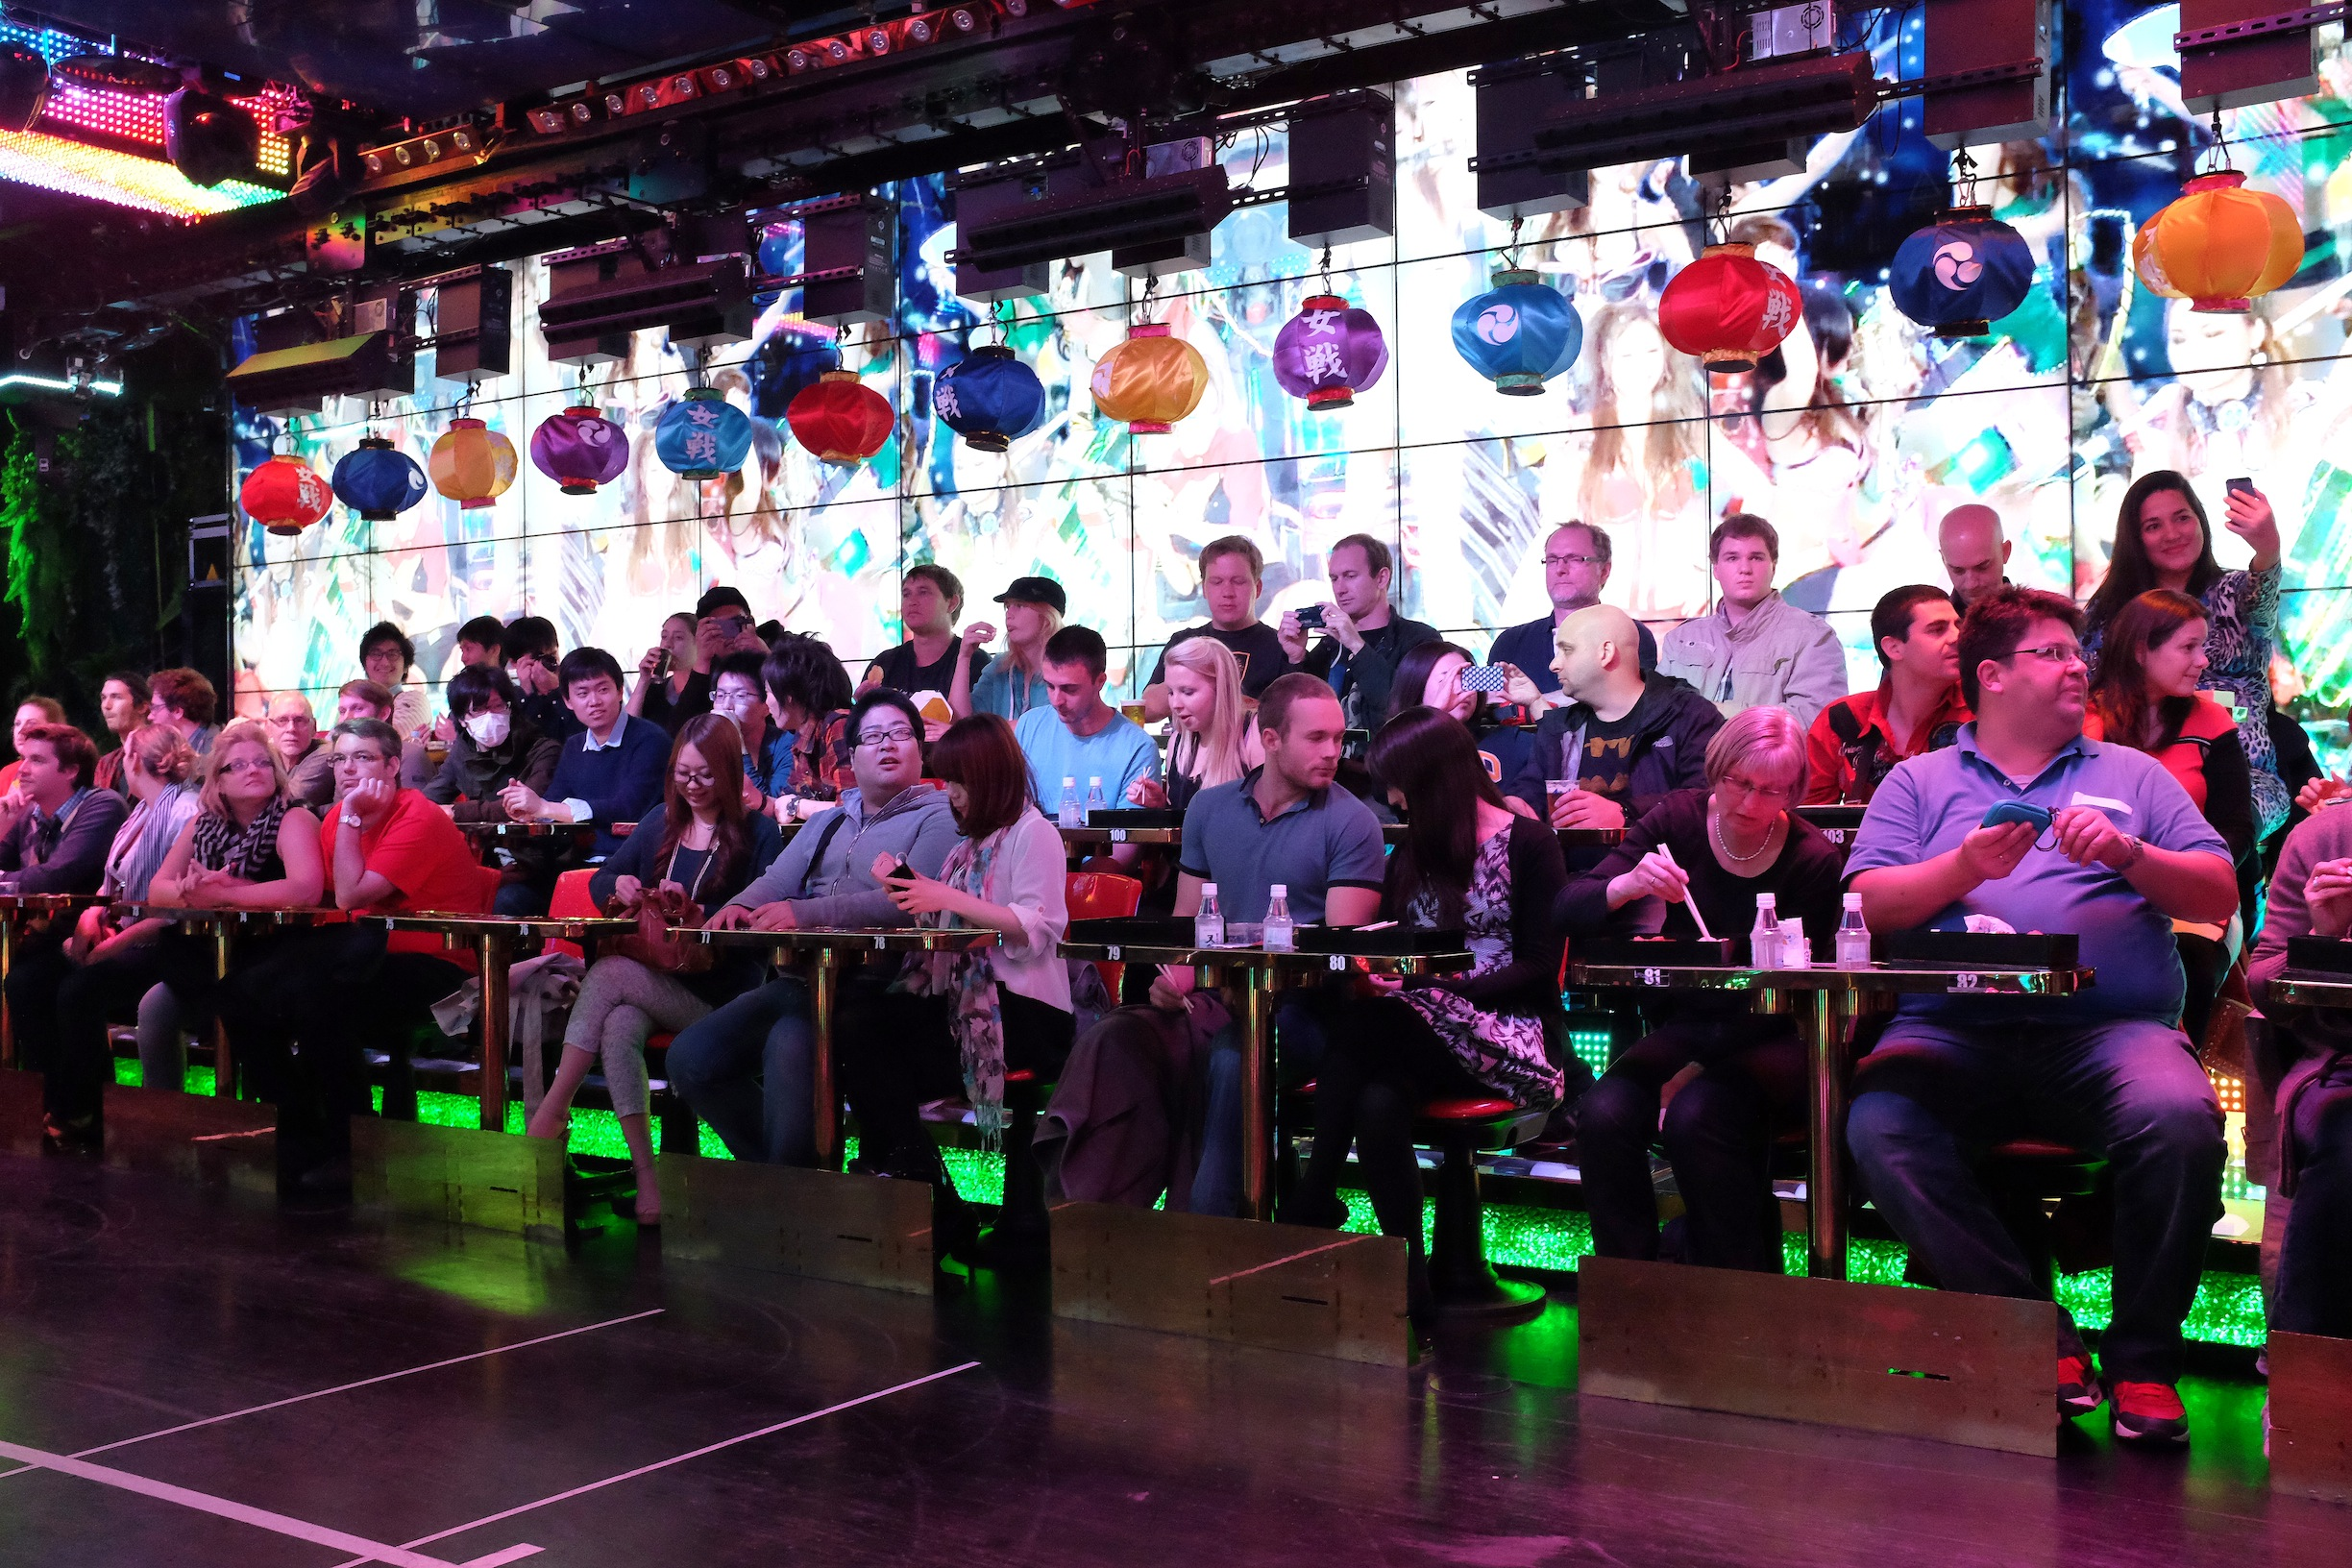 D Printing Exhibition Tokyo : All you need to know about tokyo s robot restaurant klook